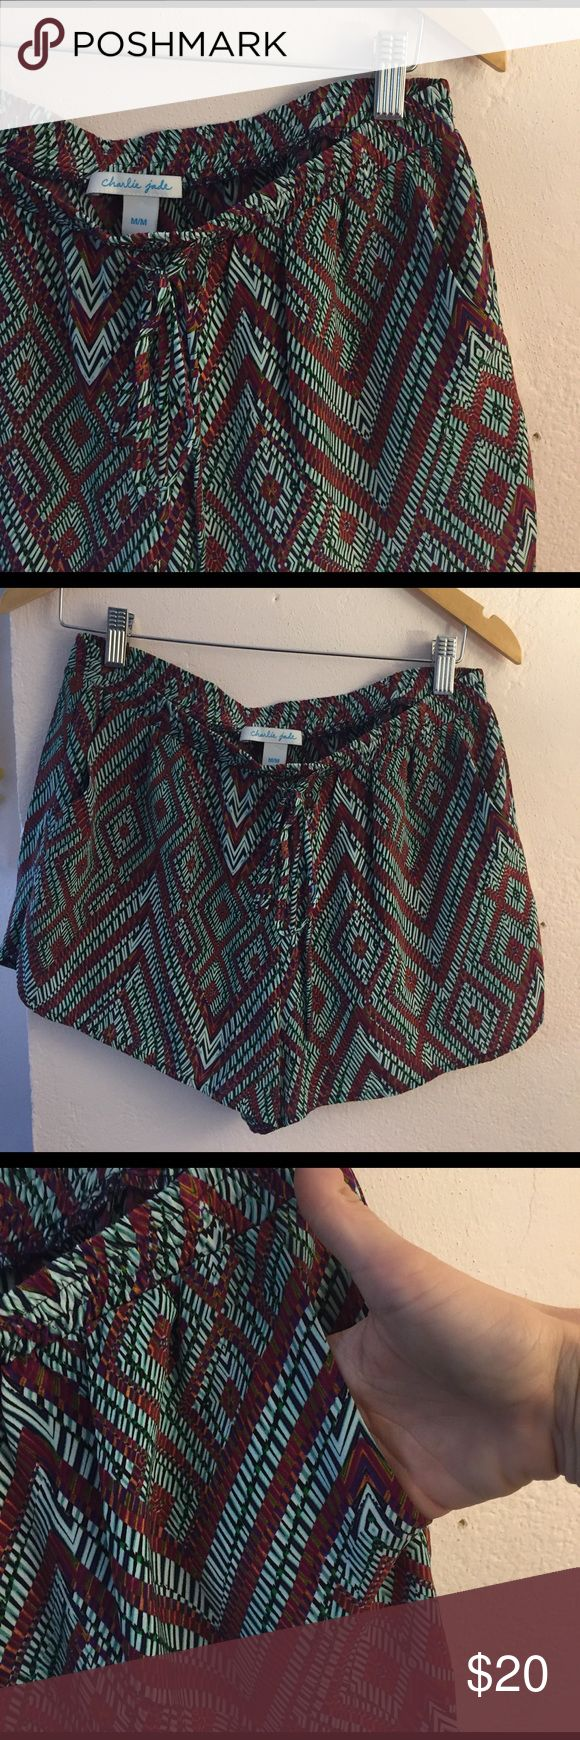 Anthropologie Charlie Jade silk shorts NWOT! Never worn, zero flaws. Elastic band, draw string tie. Front 2 pockets Anthropologie Shorts